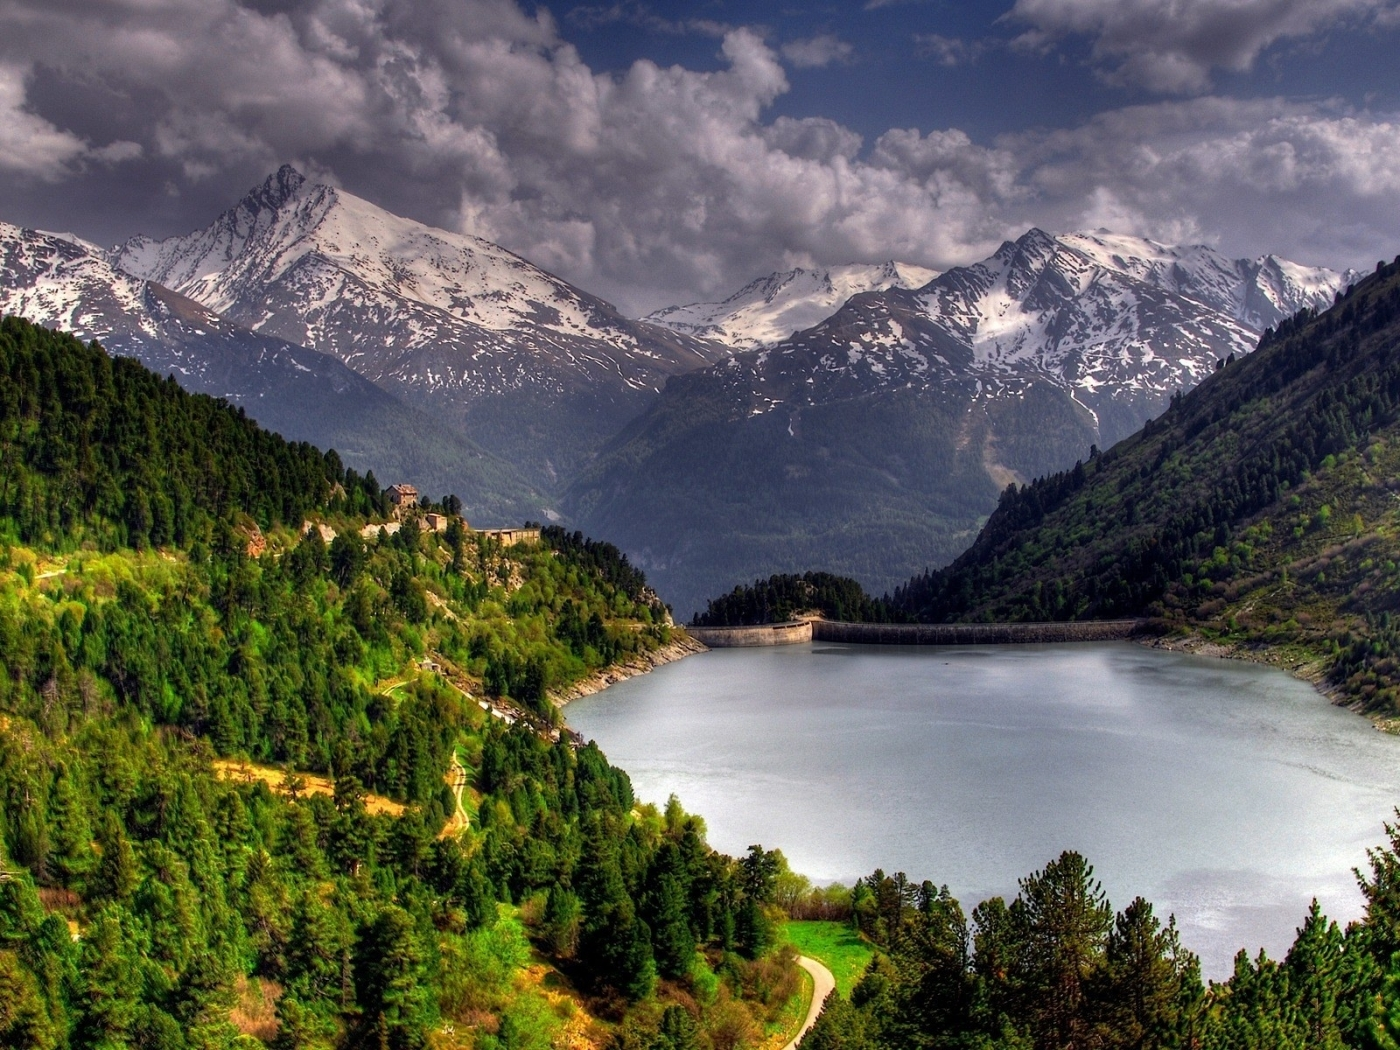 47202 download wallpaper Landscape, Nature, Mountains, Lakes screensavers and pictures for free